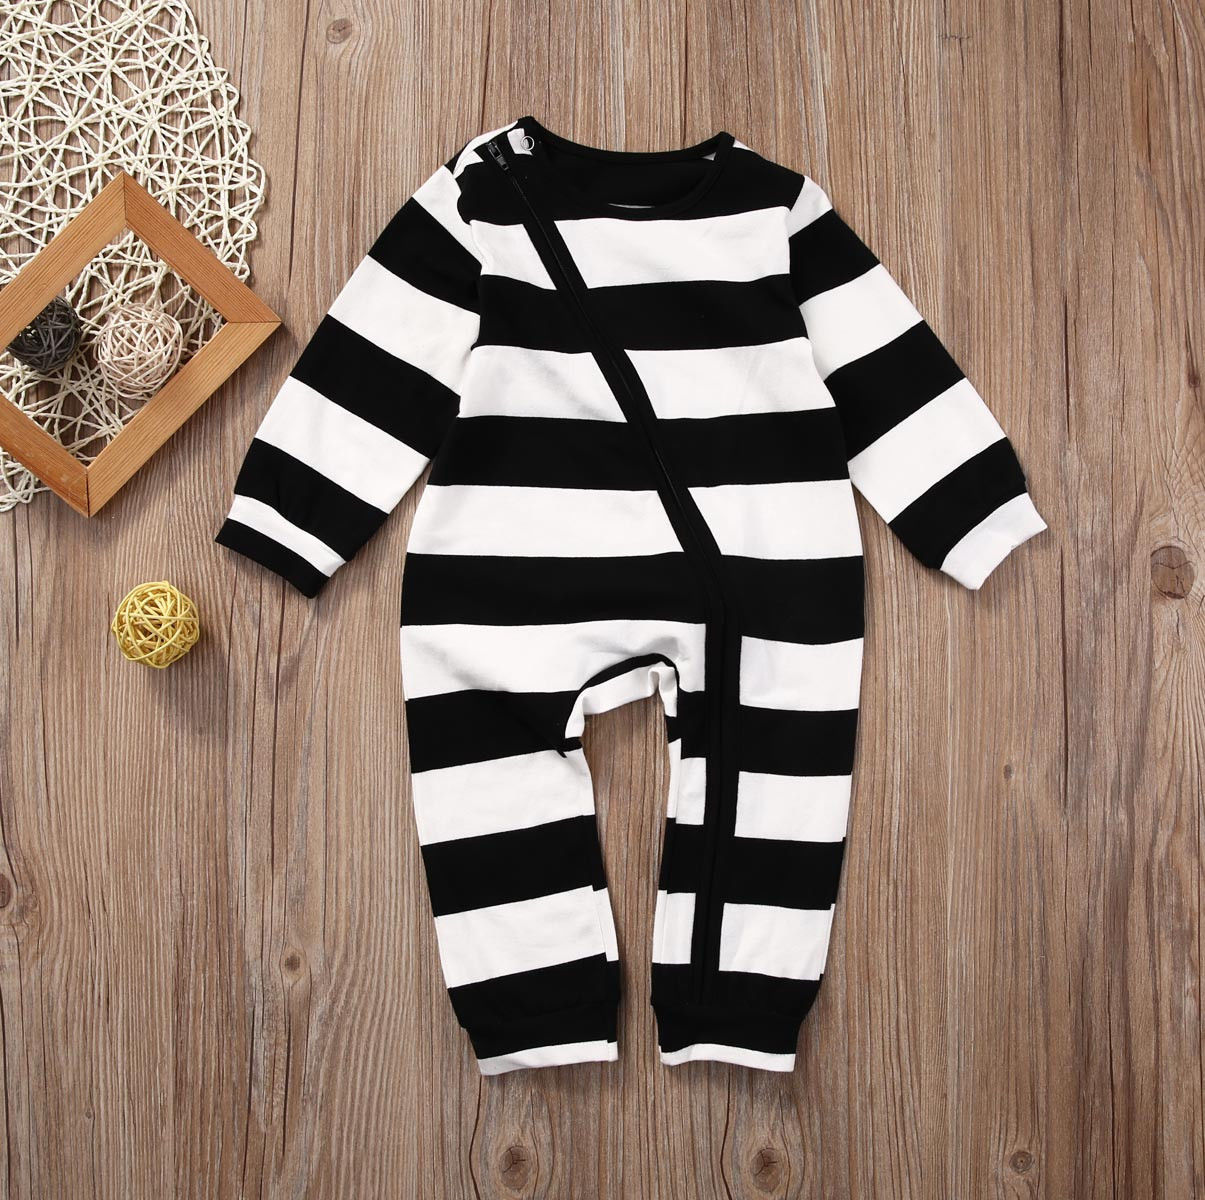 Spring Autumn Newborn Toddler Baby Boys Girls Clothes Long Sleeve Cotton Zipper Cute Striped Bodysuit Playsuit Baby Clothes